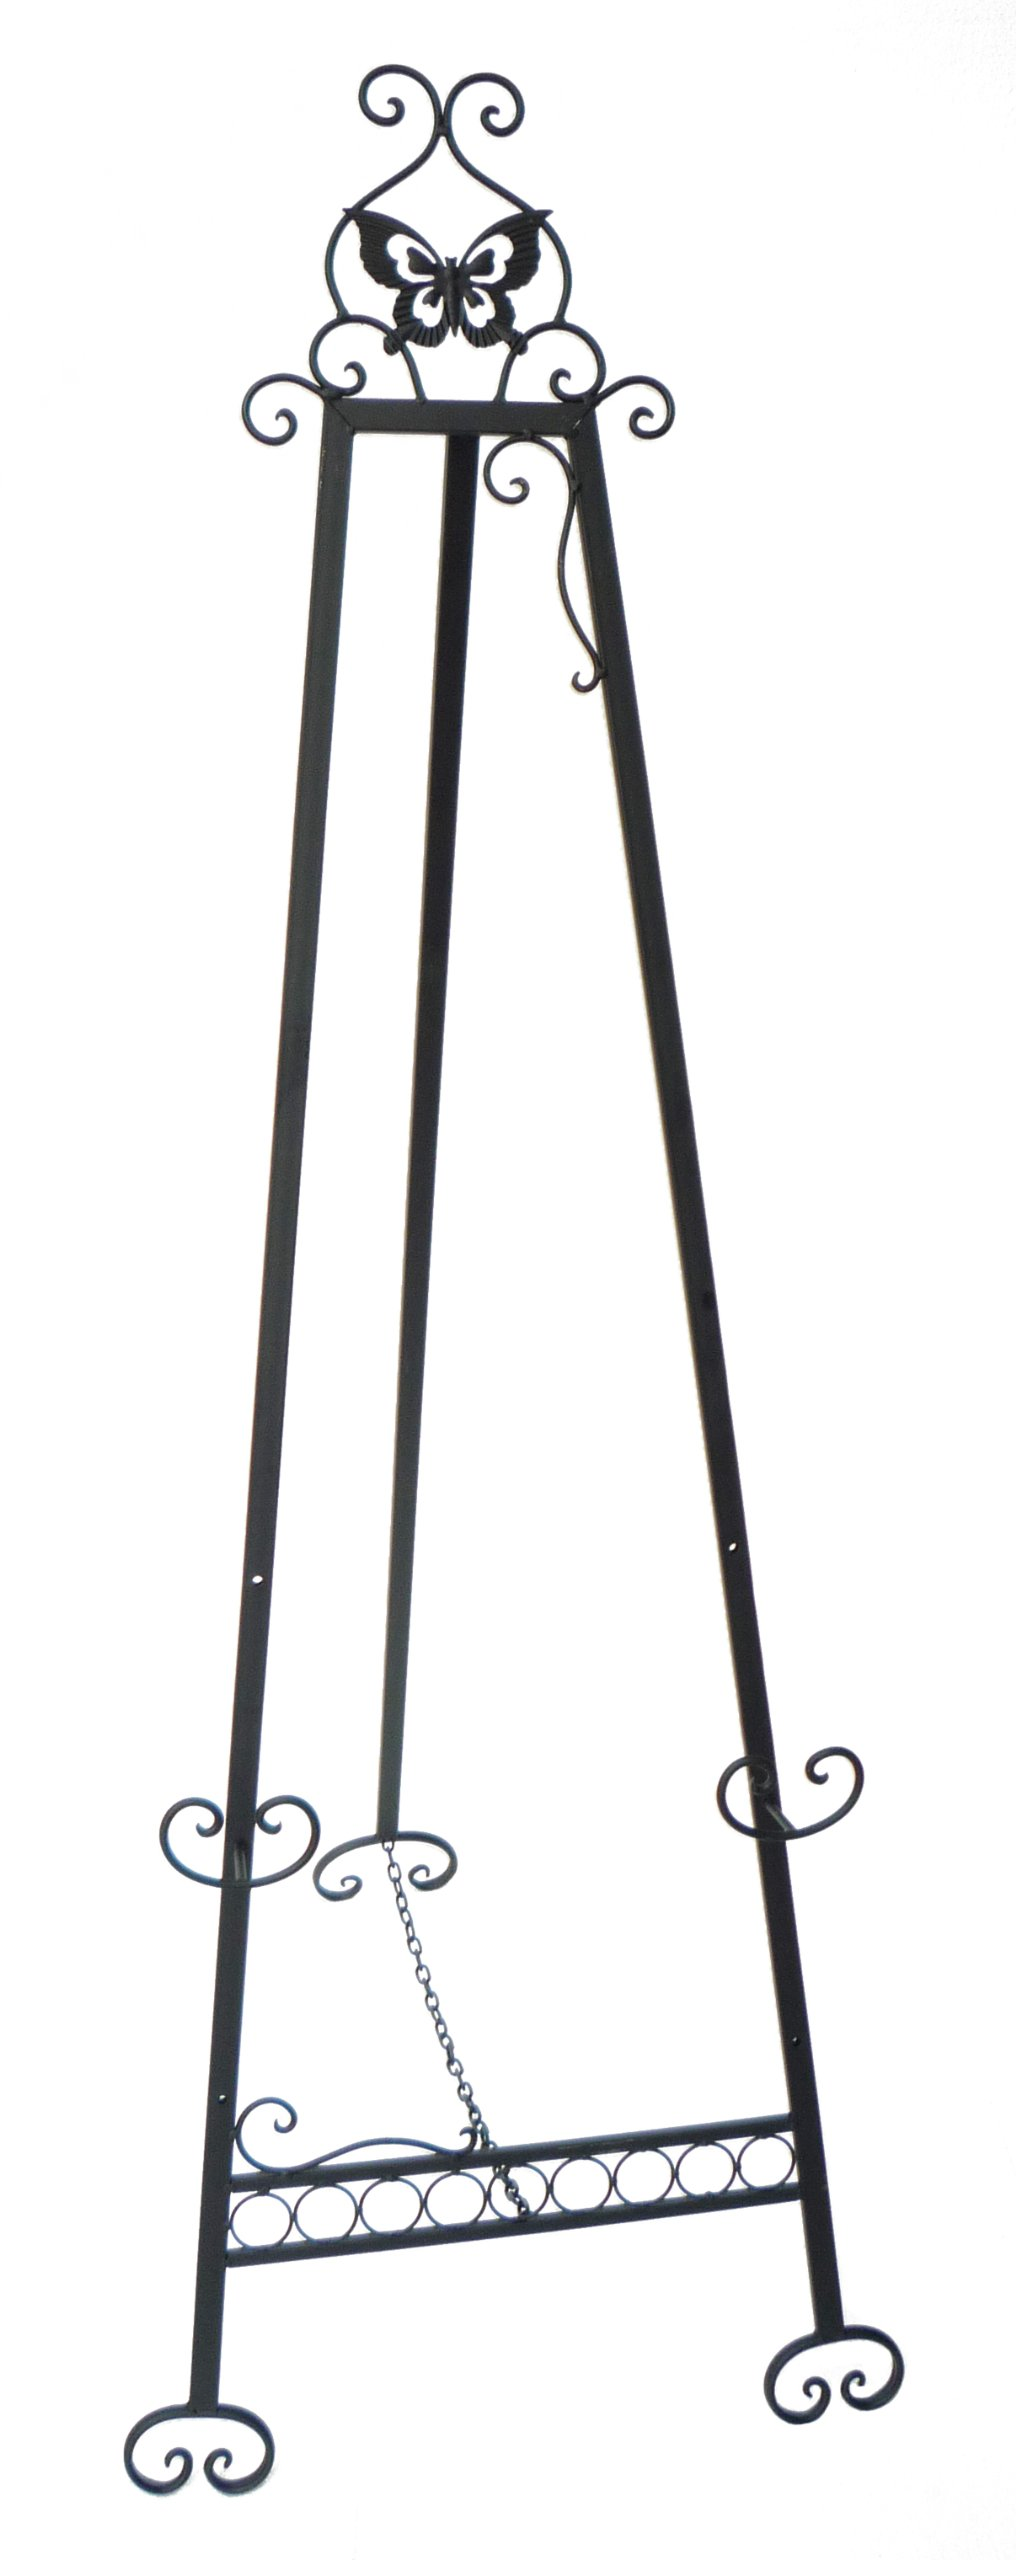 Designstyles Decorative Metal Easel Stand - Adjustable Floor Display for Art Pieces, Signs, Mirrors and Chalk/Dry Erase Boards - 61'' Tall, Antique Finished Iron, Black - Butterfly Design by Designstyles